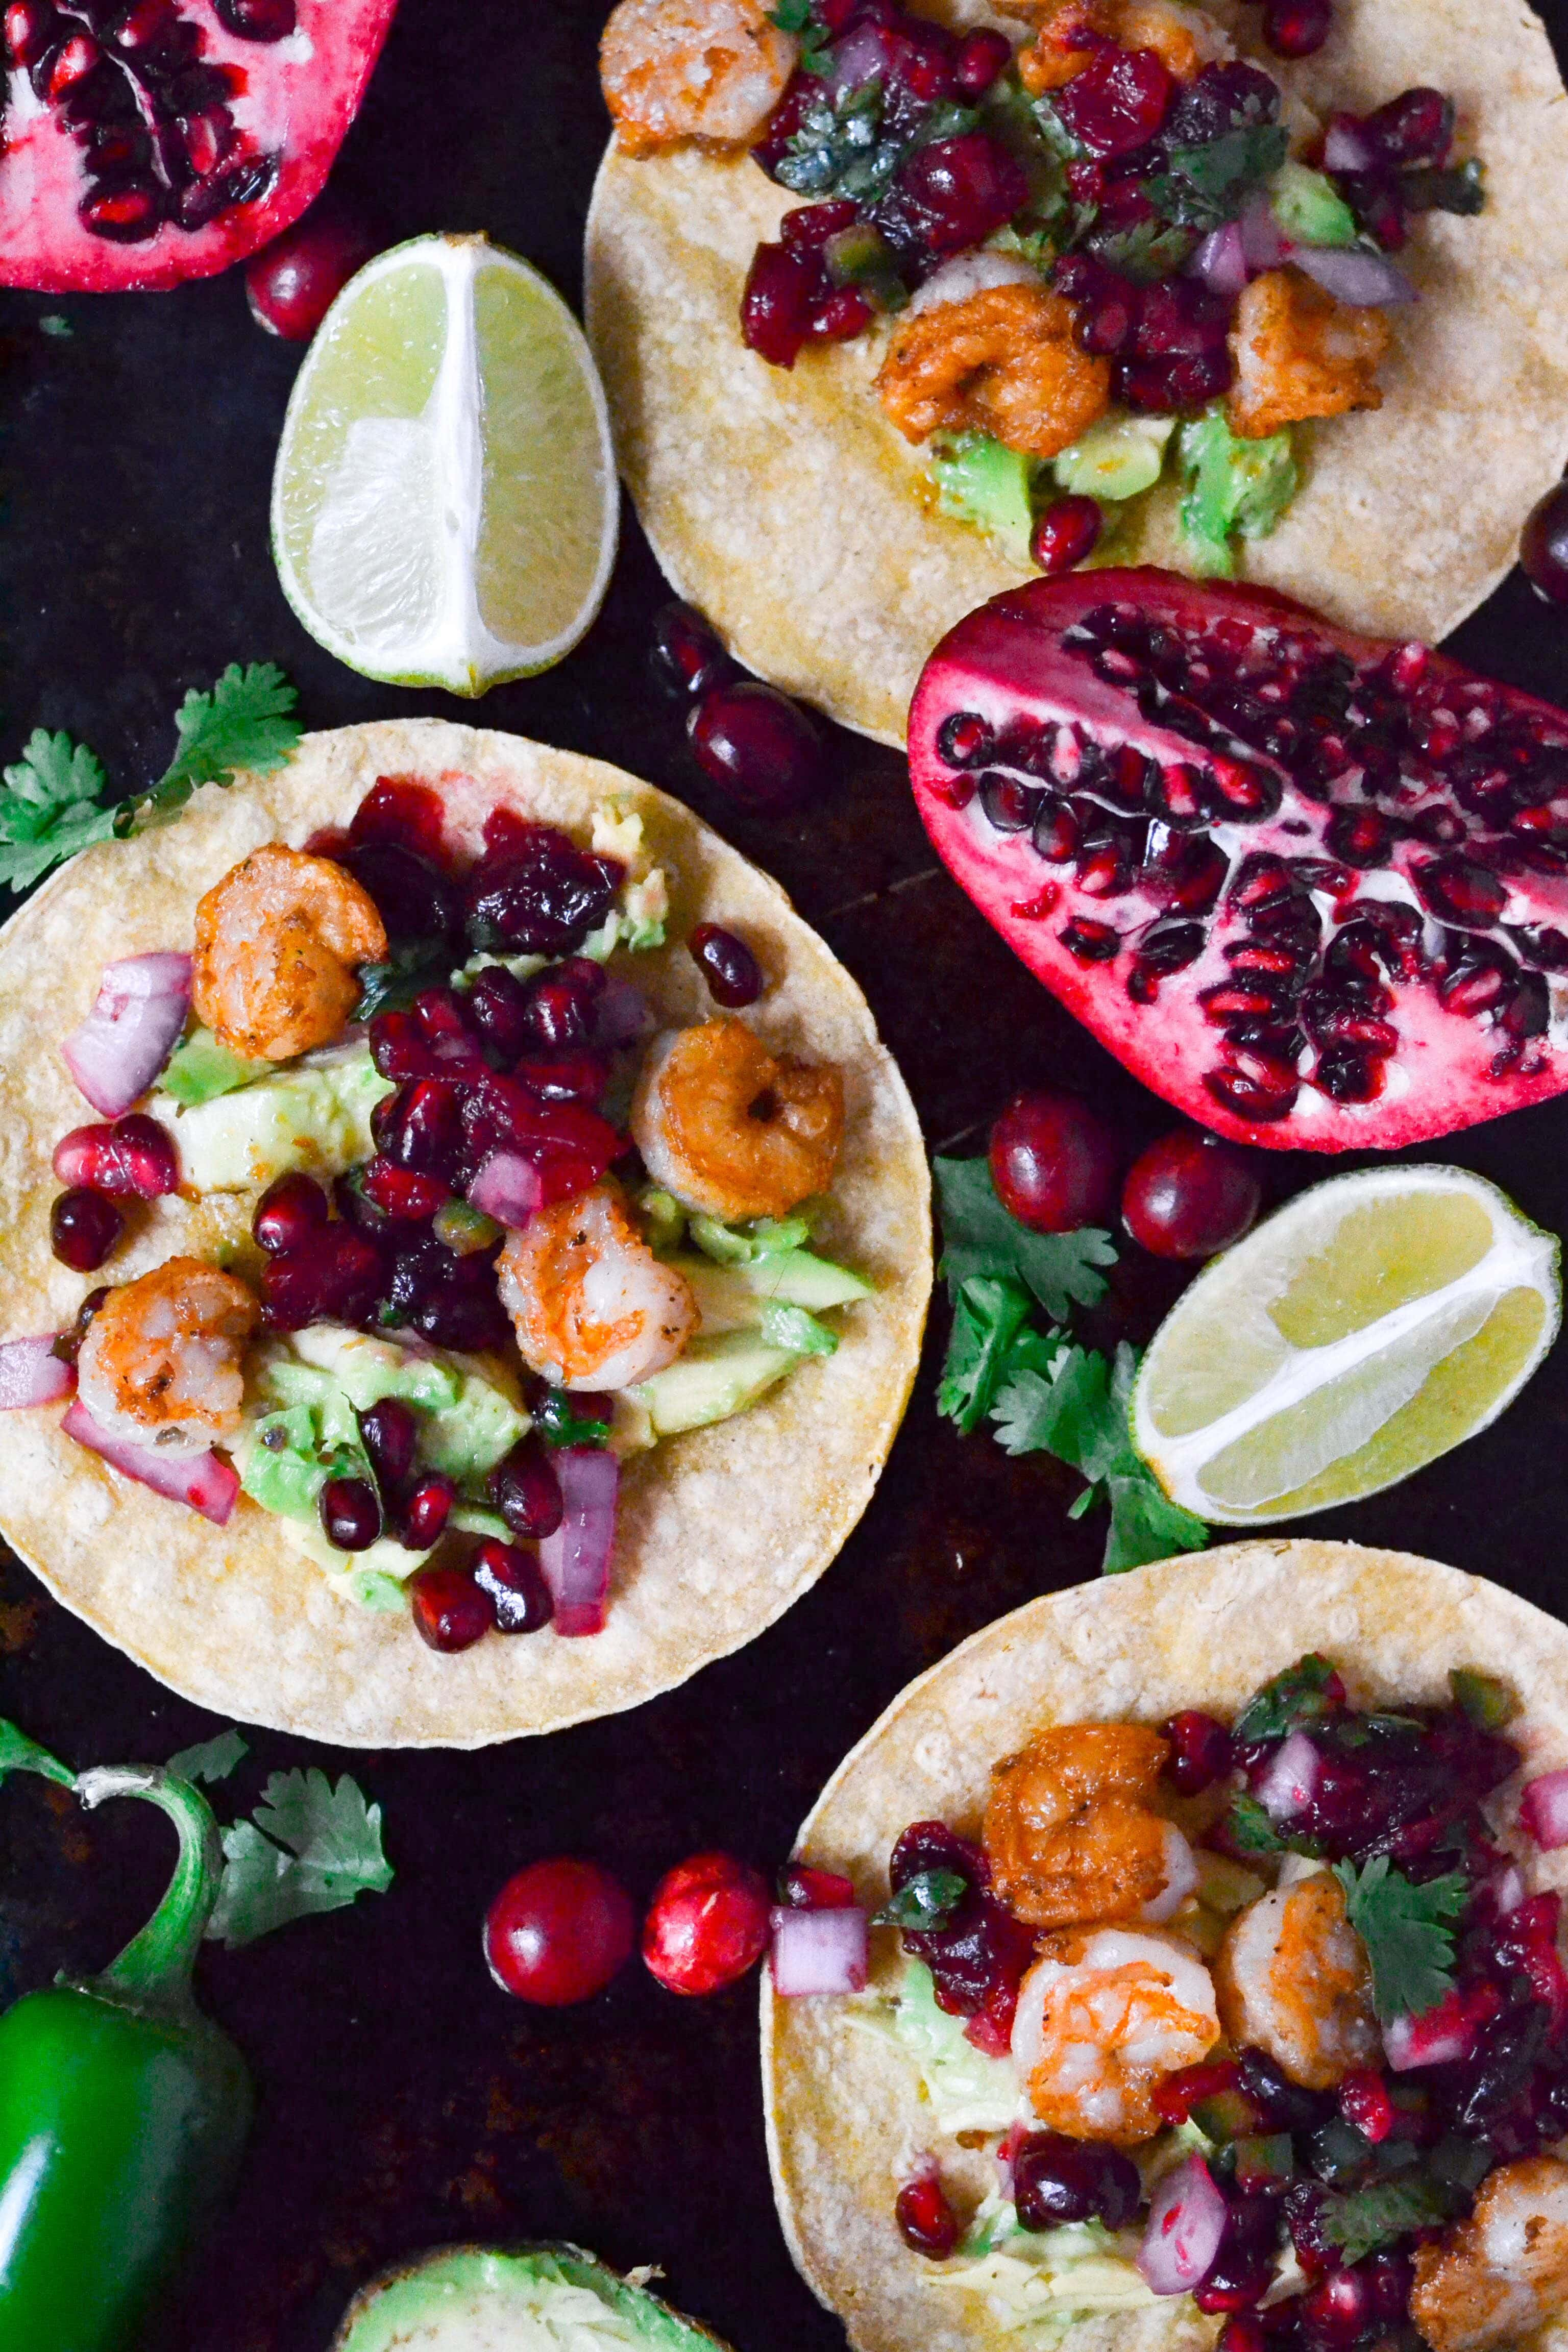 Shrimp Tacos with Cranberry Pomegranate Salsa (GF, DF) - A Dash of Megnut